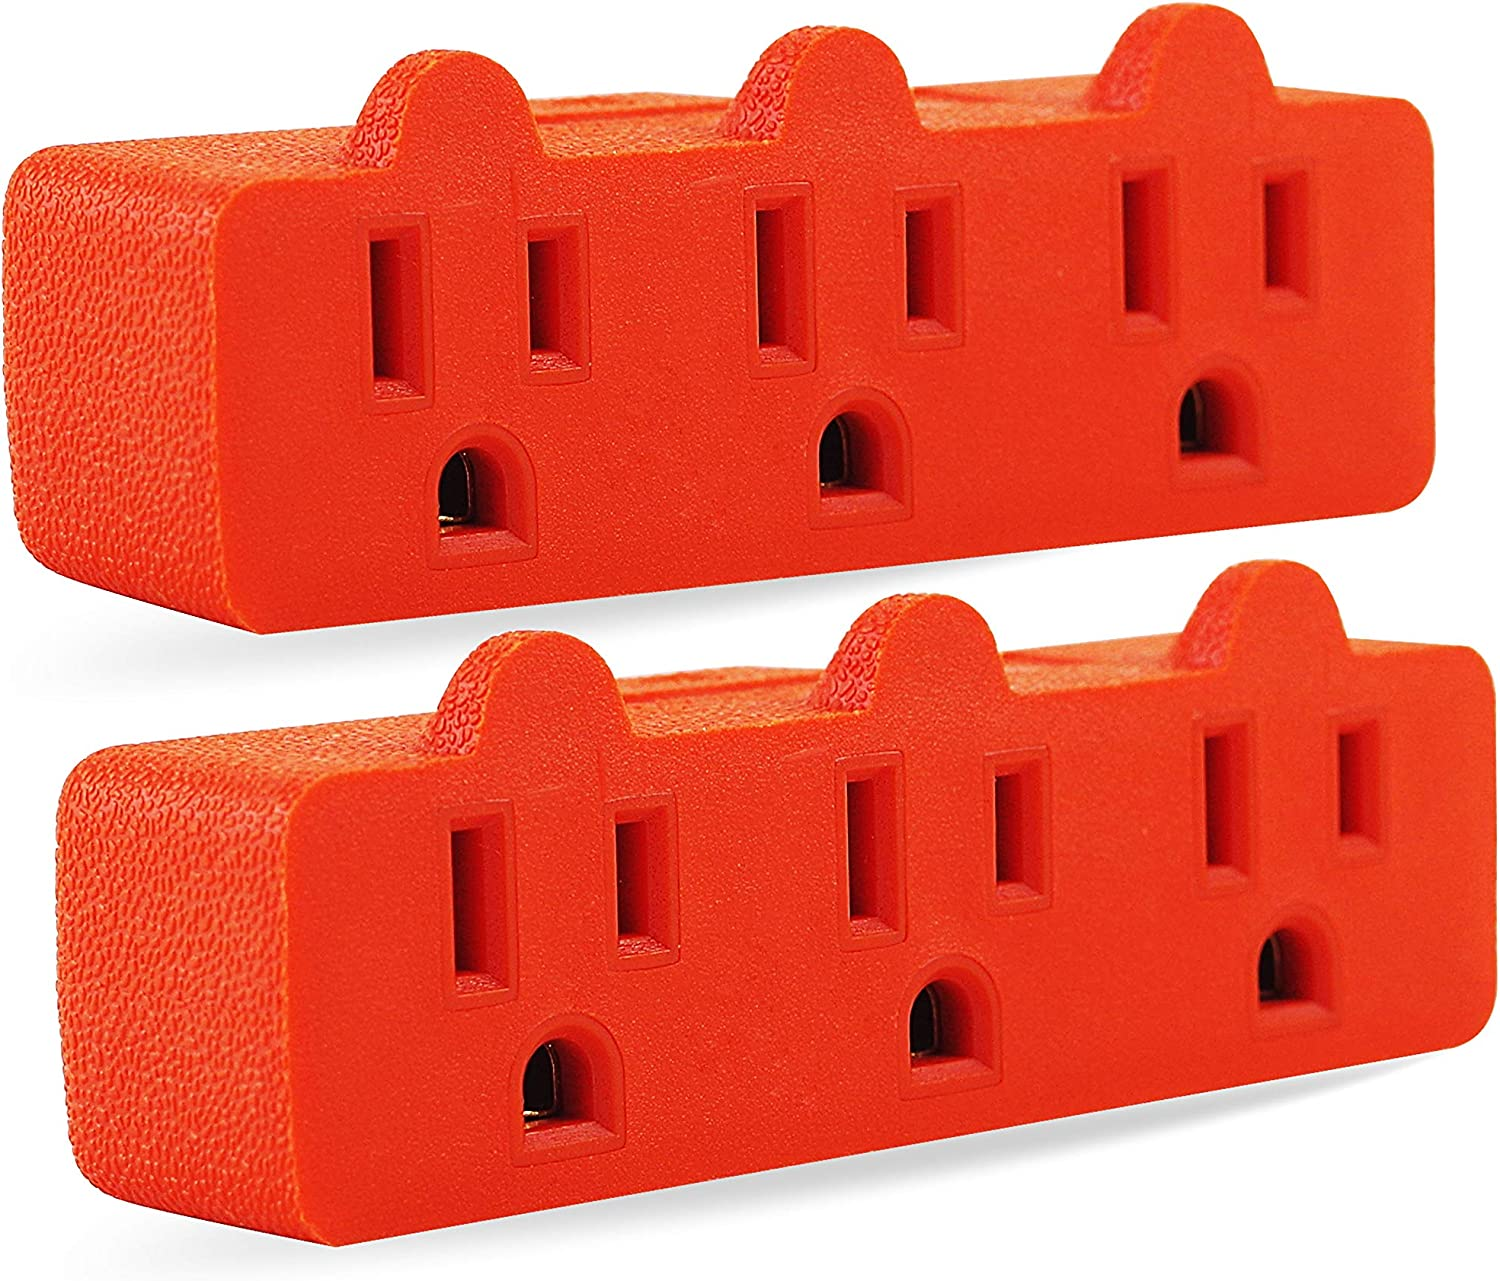 Three Plug Outlet Adapter, 3 Plug Extender, Heave Duty Wall Plug Splitter, Turn 1 to 3 Outlet, ETL Certified, Orange (2PACK)